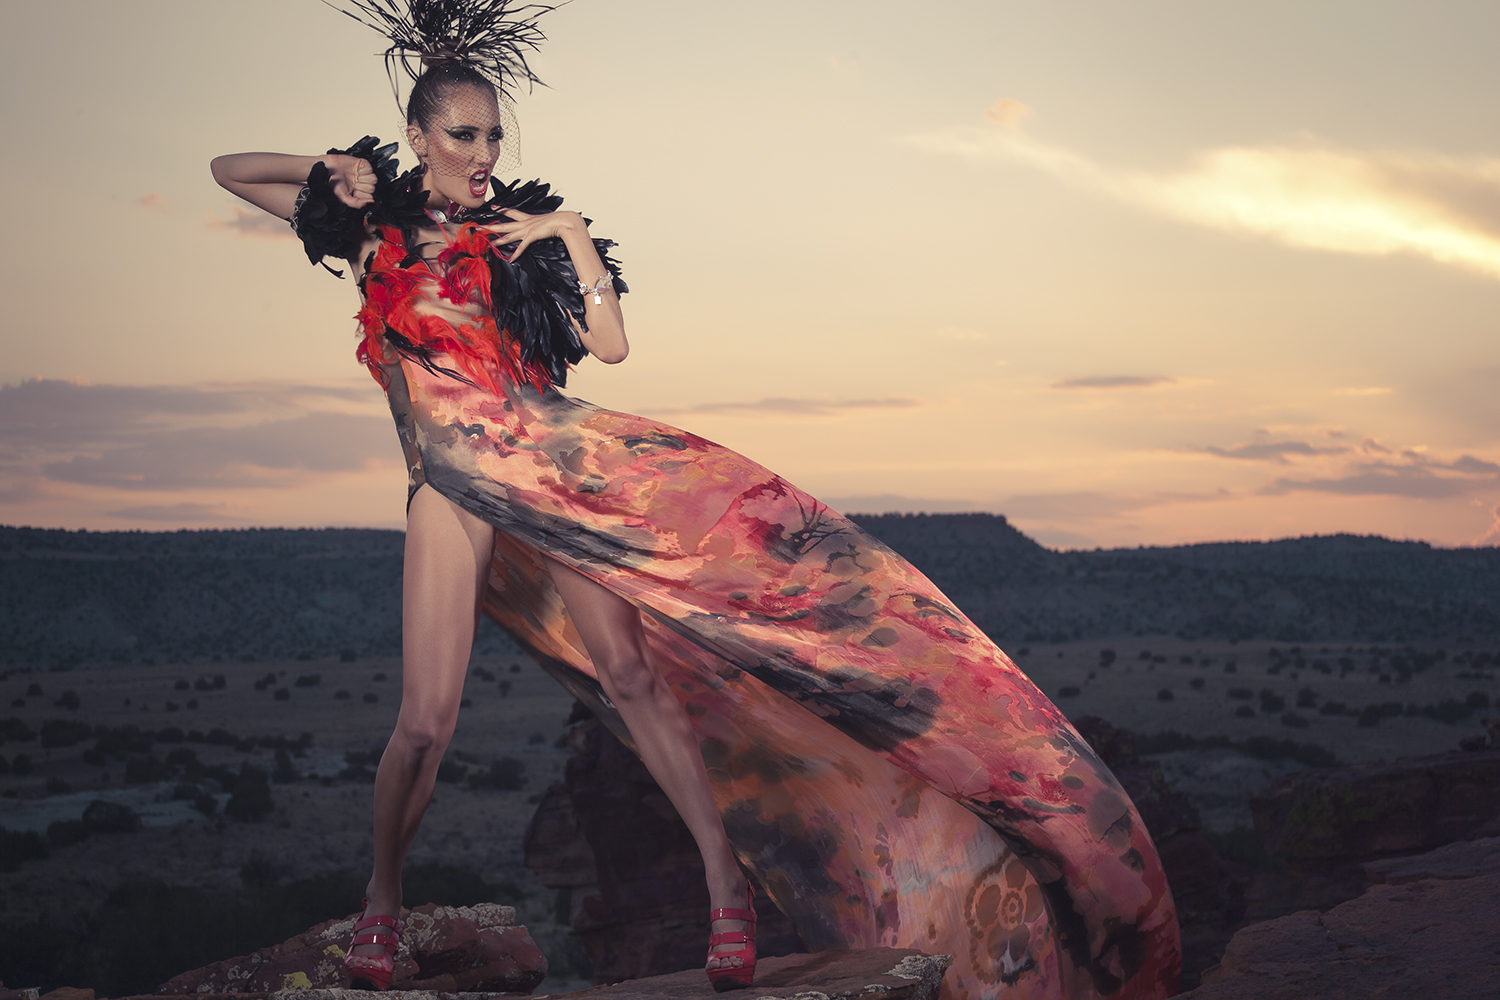 Woman in gown and dramatic makeup posed in desert